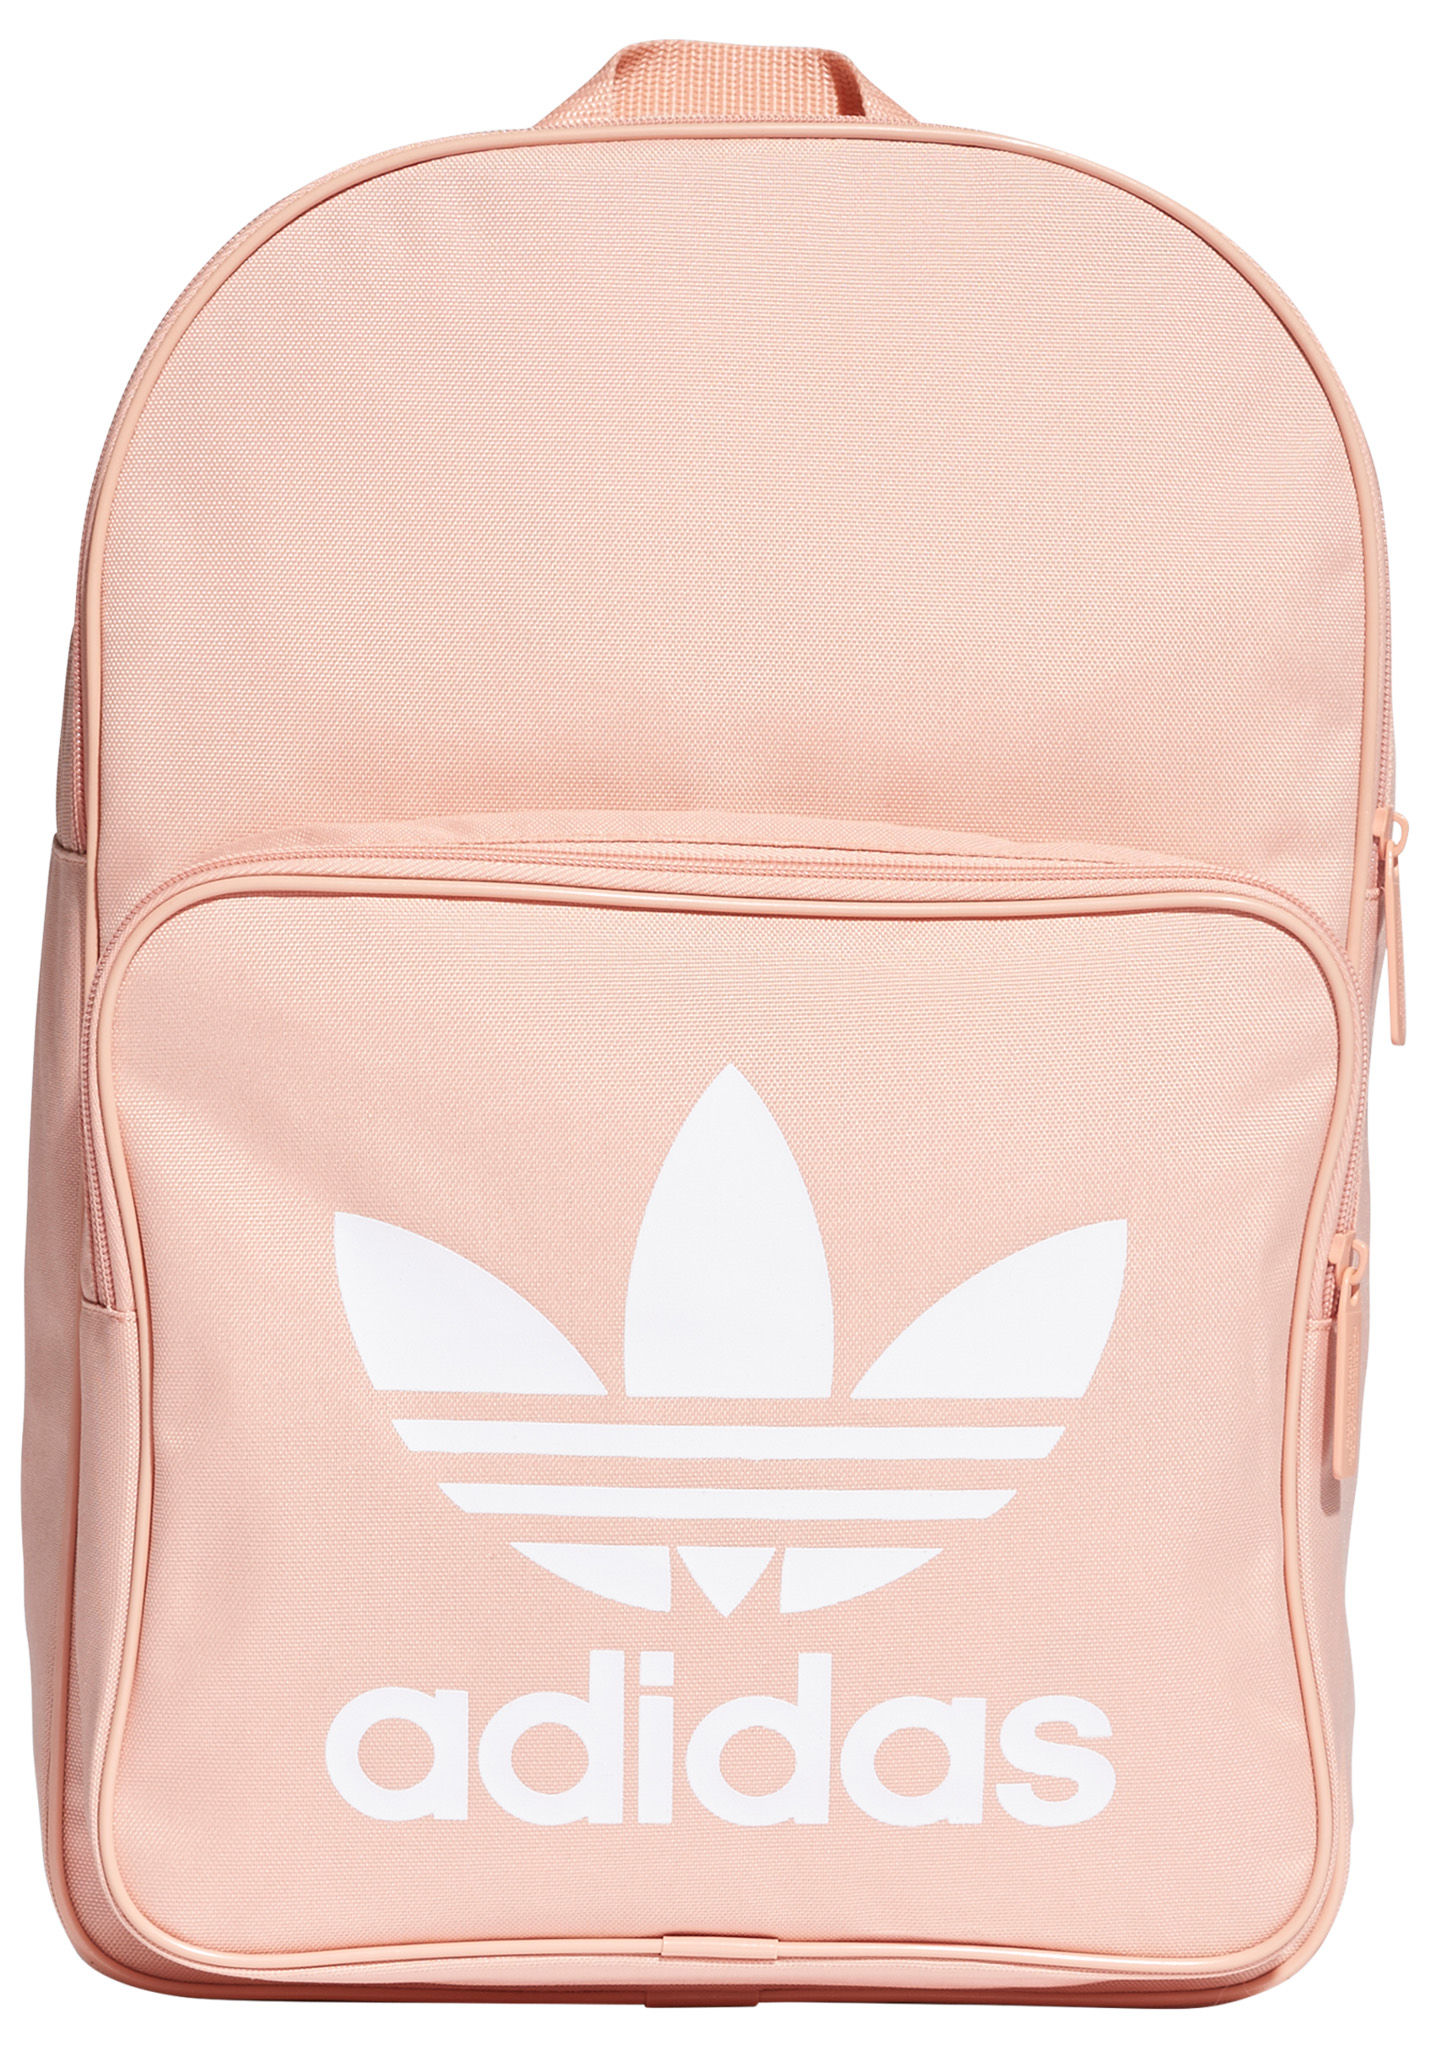 46c0fd89b ADIDAS ORIGINALS Classic Trefoil - Backpack for Men - Pink - Planet Sports